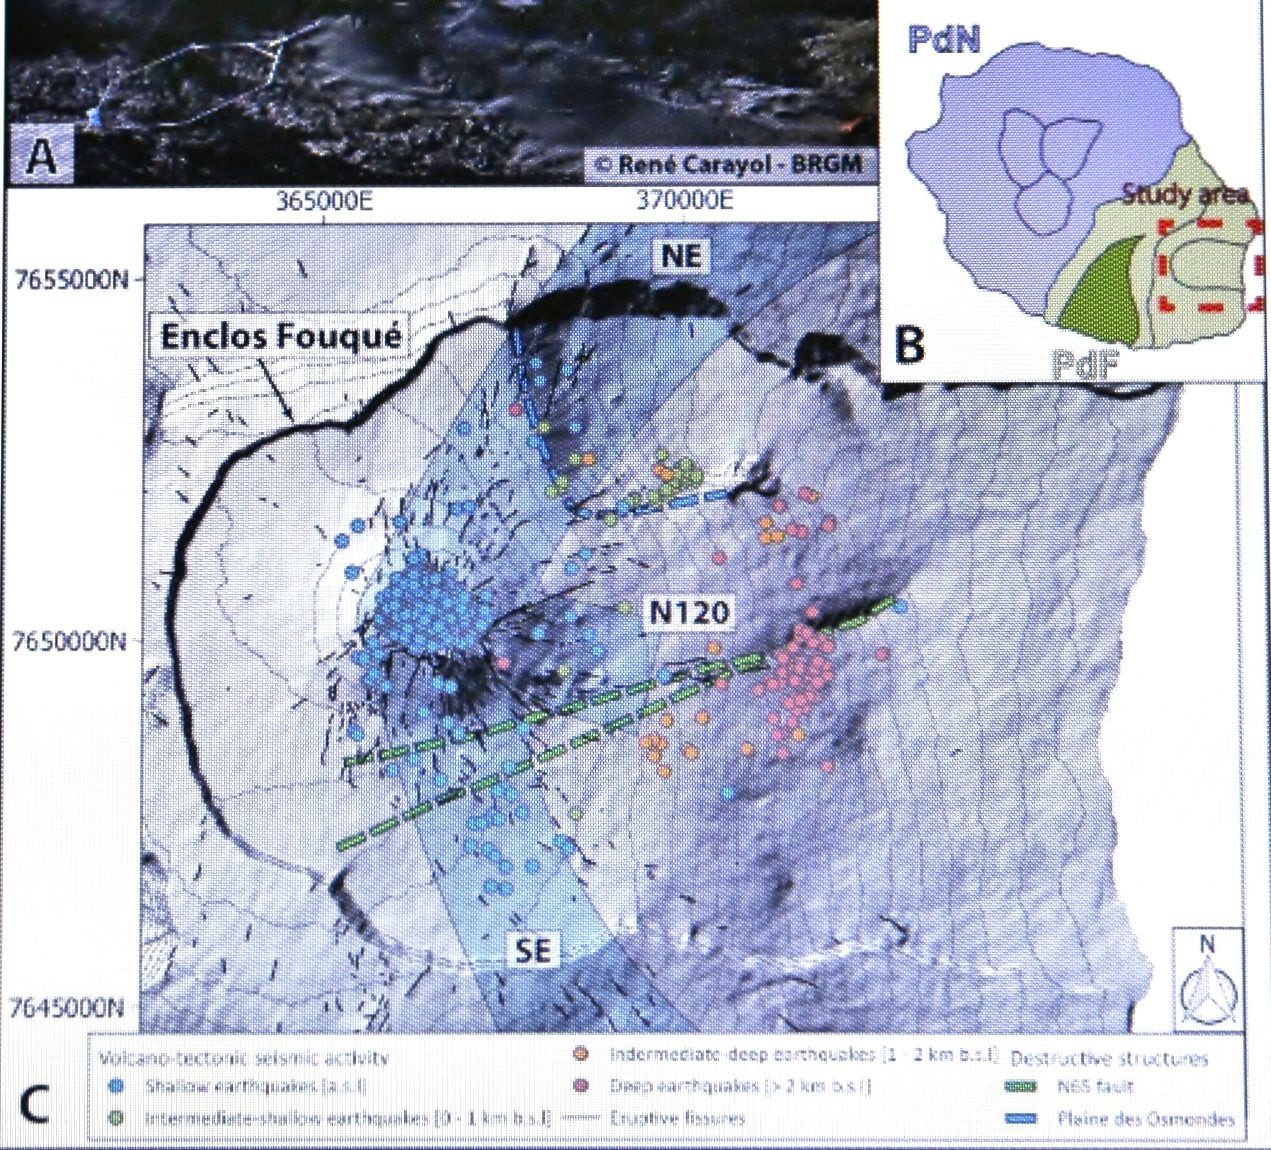 Presentation of the most active part of Piton de la Fournaise: the Enclos Fouqué caldera. (B) Map of La Réunion Island with the two volcanoes: PdN: Piton des Neiges - PdF: Piton de la Fournaise. The study area is delimited by a red dashed square. (C) Digital elevation model with the location of the recent volcano-tectonic seismic activity (colored circles), eruptive fissures visible in the field (in black solid line), the three rift-zones: NE, SE and N120 (Bachèlery, 1981), and the N65 (in green dashed lines) and Plaine des Osmondes (in blue dashed line) faults as defined by Michon and Saint-Ange (2008). Maps B and C have been generated with Illustrator CS6 and the open source QGIS 3.8.3, respectively. Coordinates in meters (WGS84, UTM 40S). - image extracted from doc. referenced in source